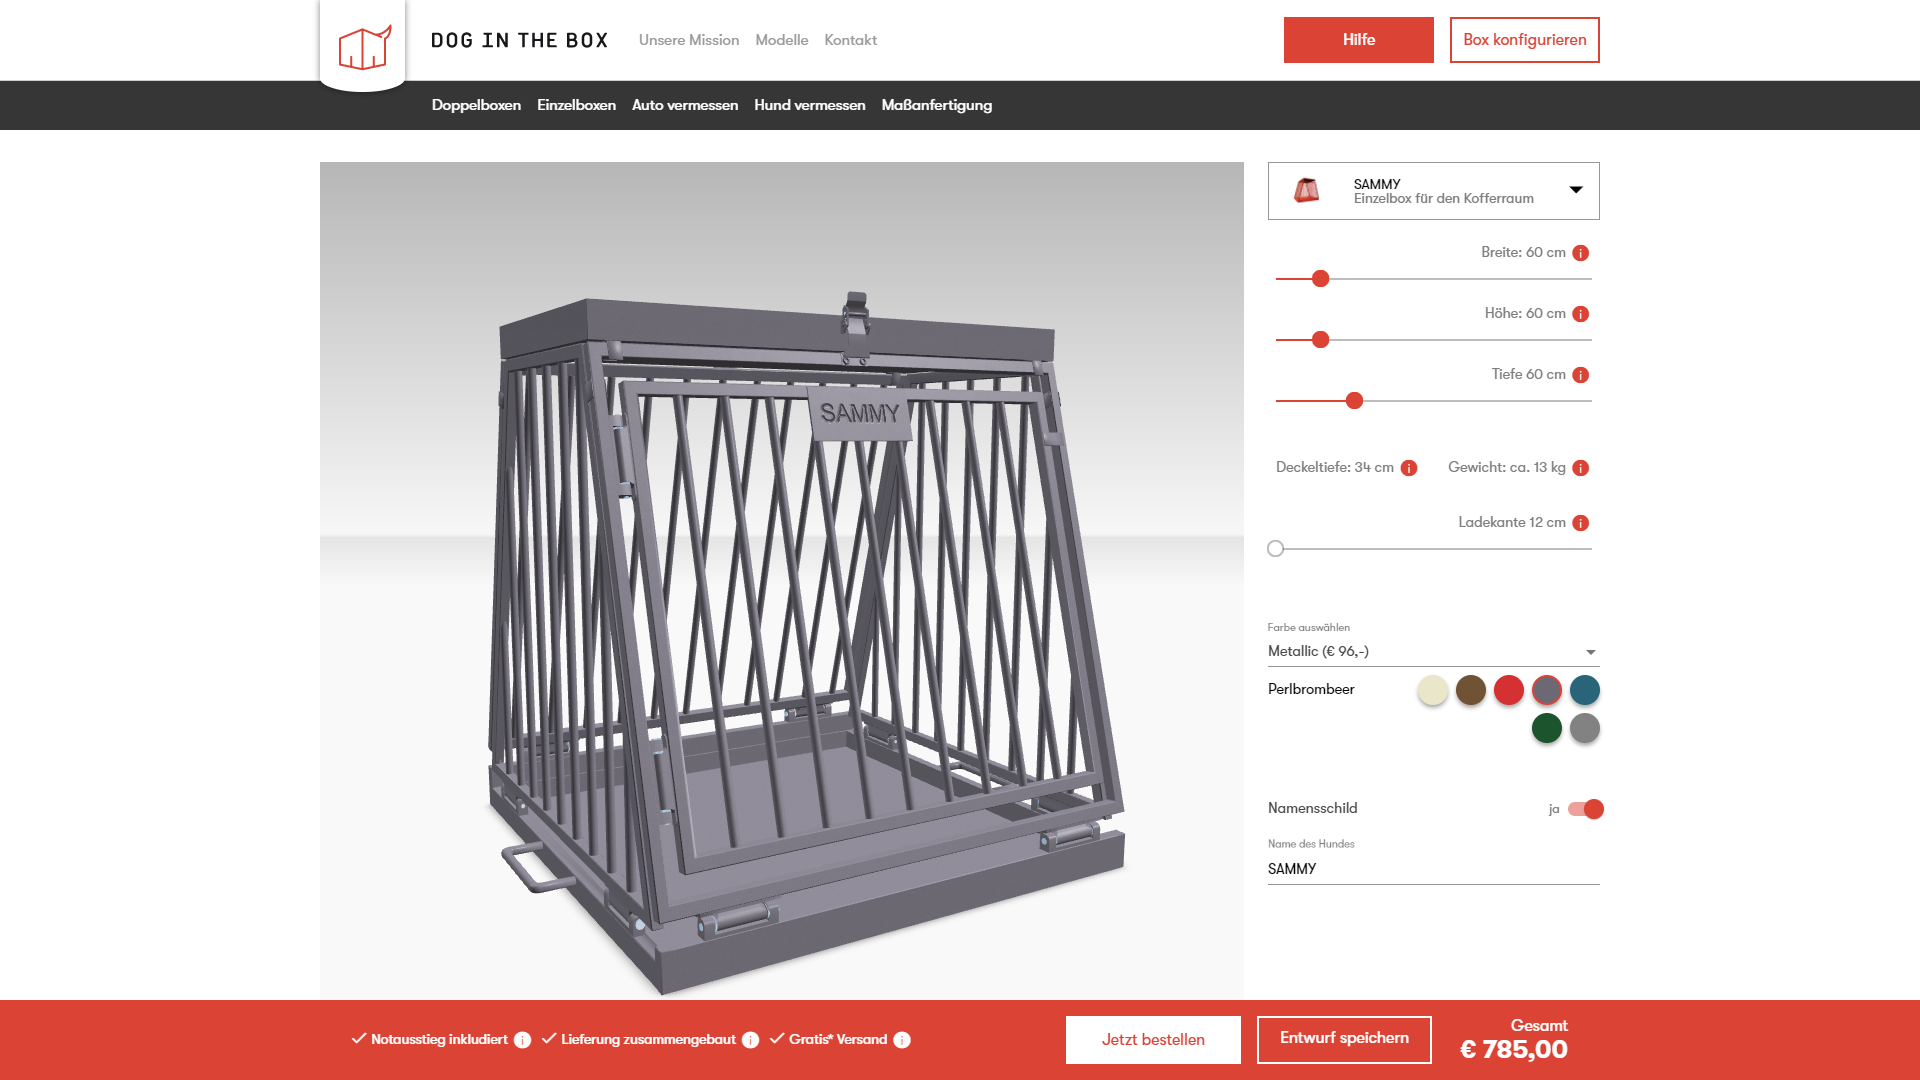 webgl configurator dogbox from dog in the box